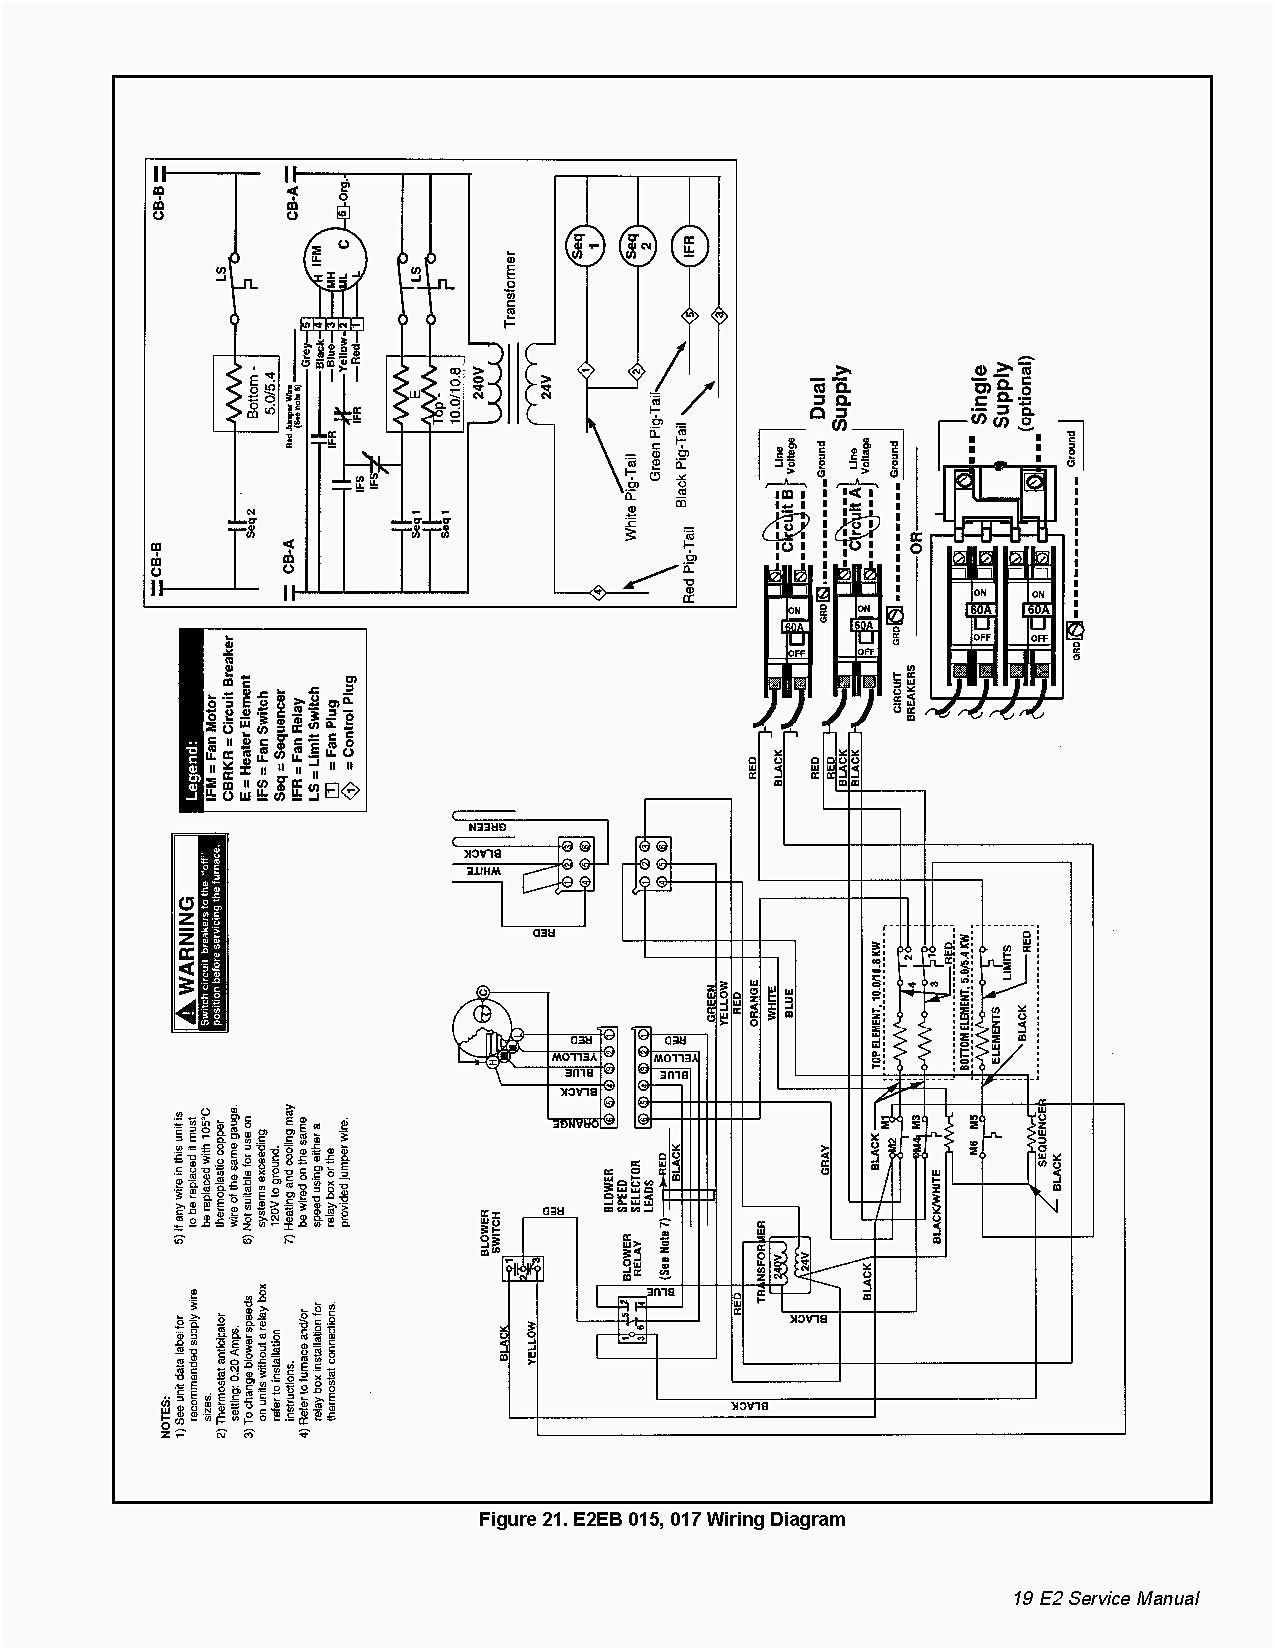 Nordyne Furnace Wiring Diagram Manual E2eb 015ha Bright